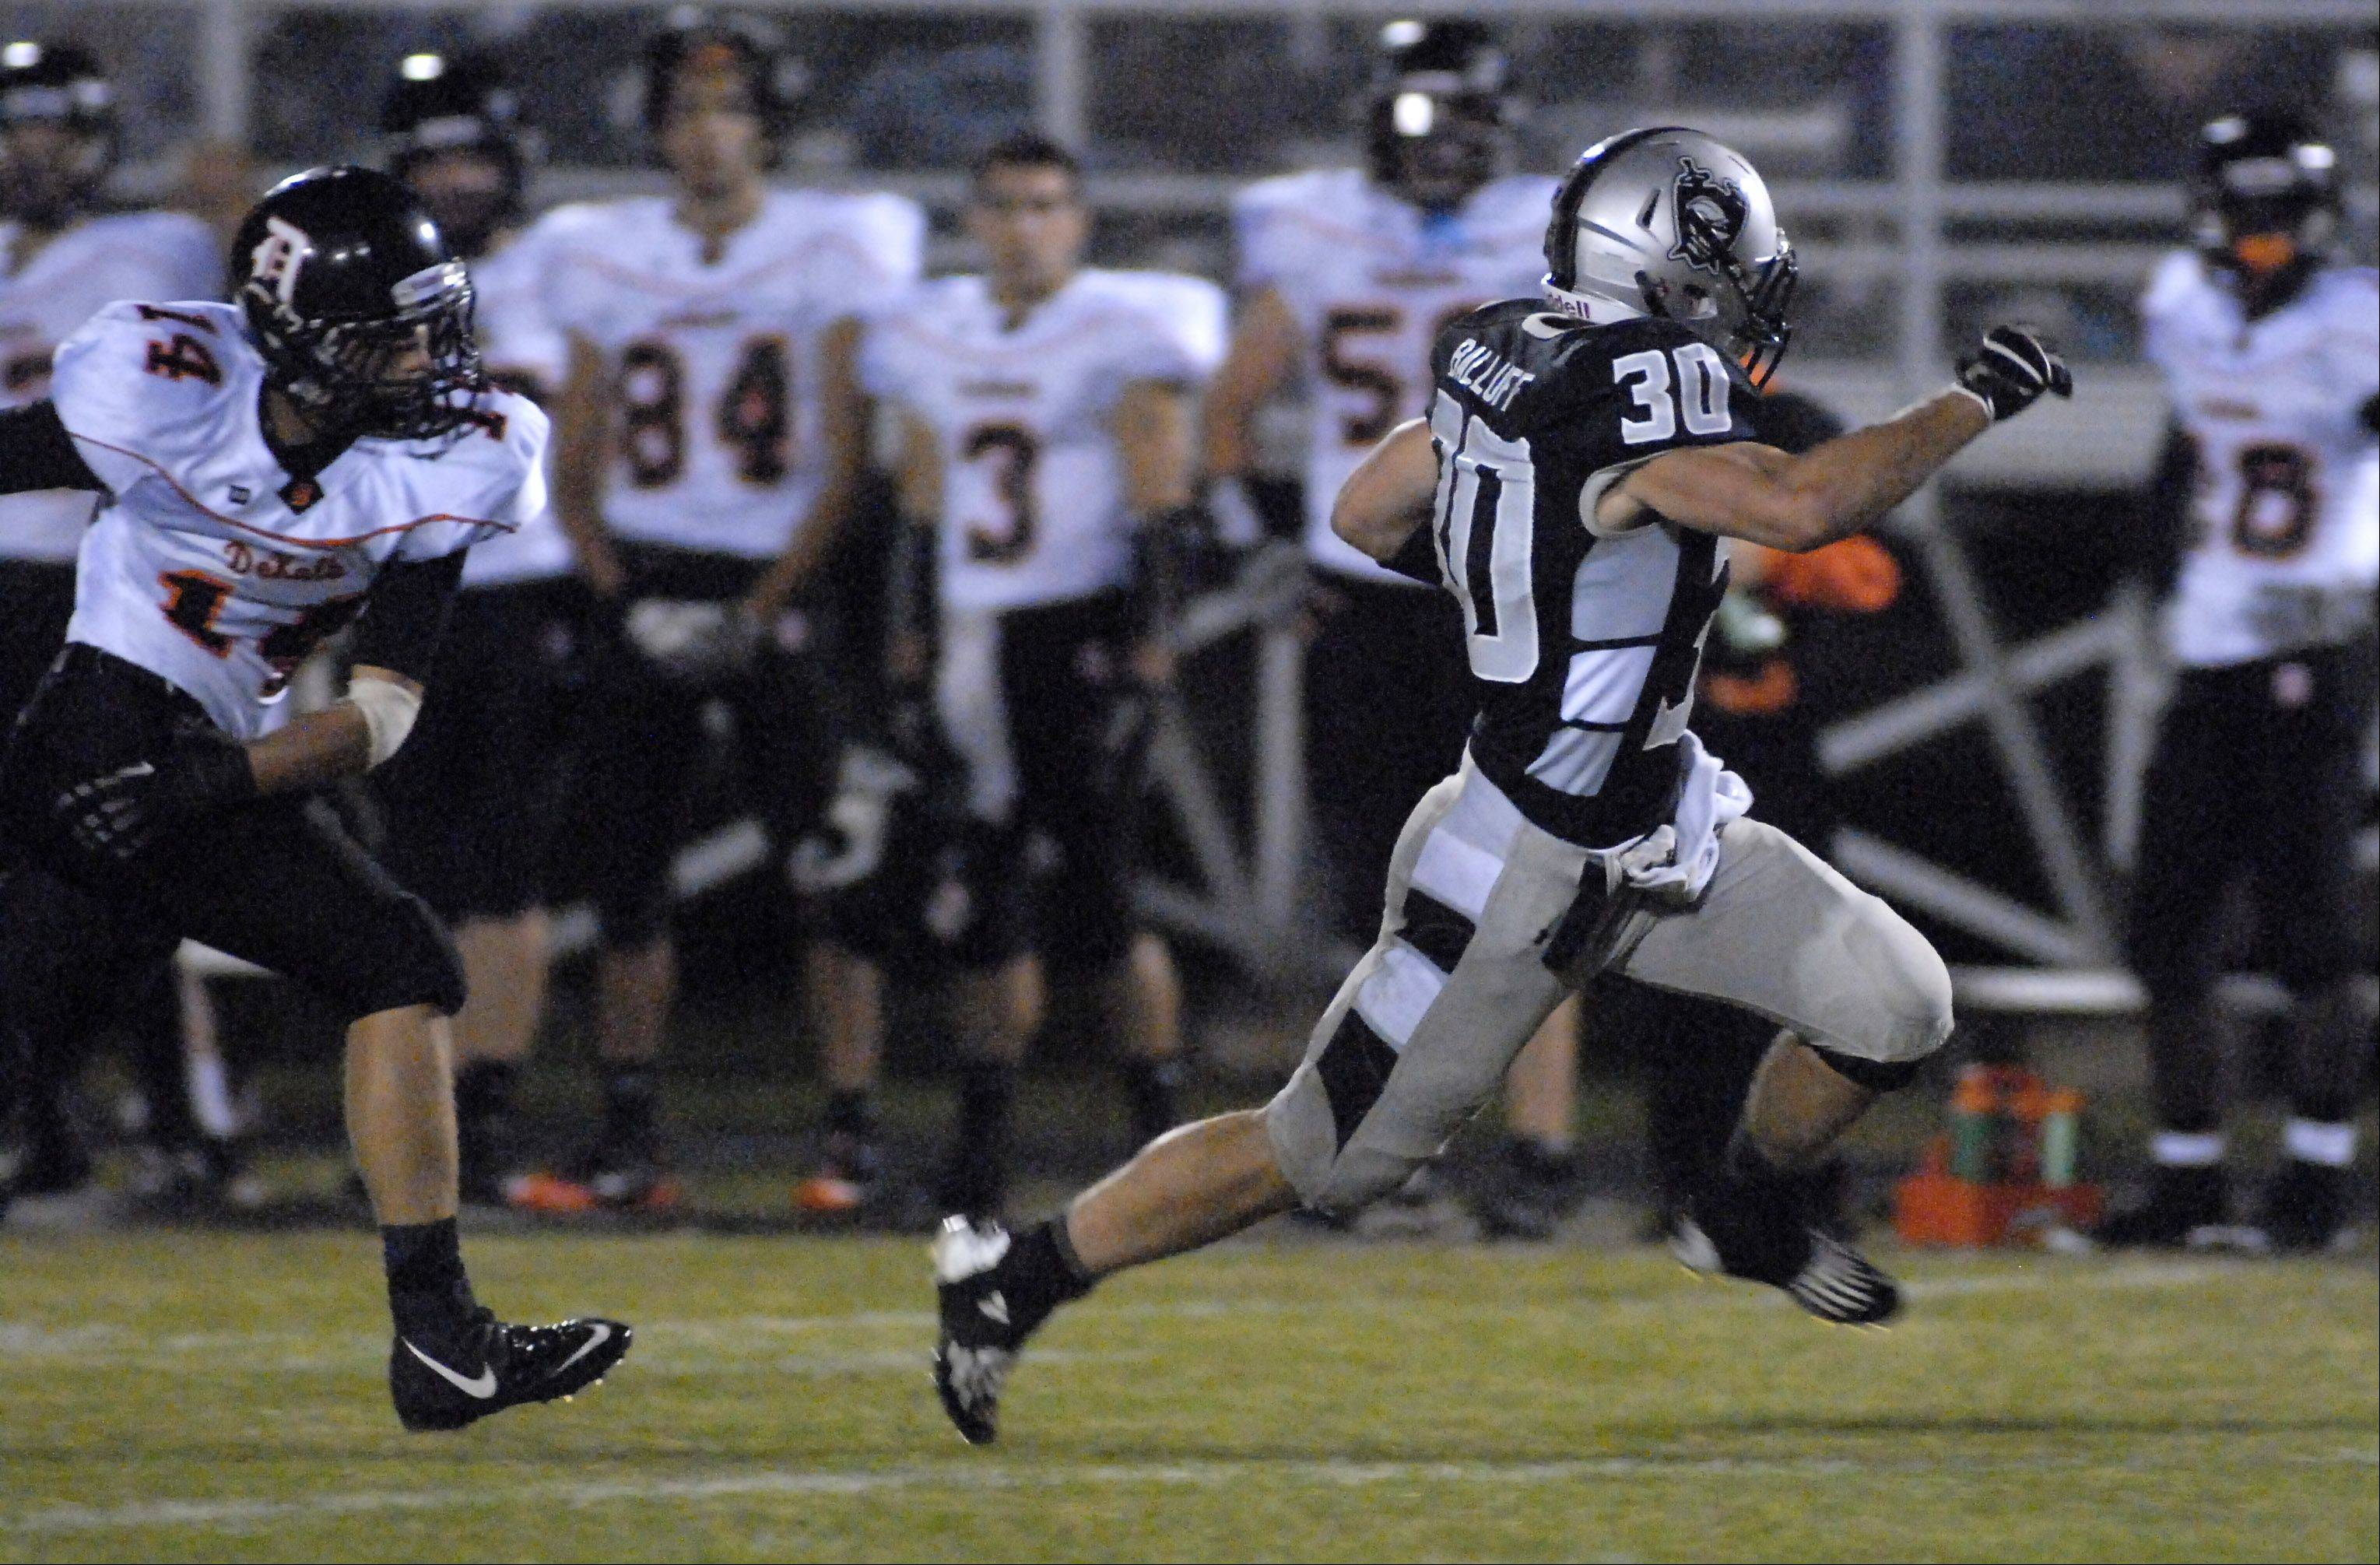 Kaneland�s Jesse Balluff shakes off DeKalb�s Jake Young in the first quarter en route to the end zone for a touchdown.